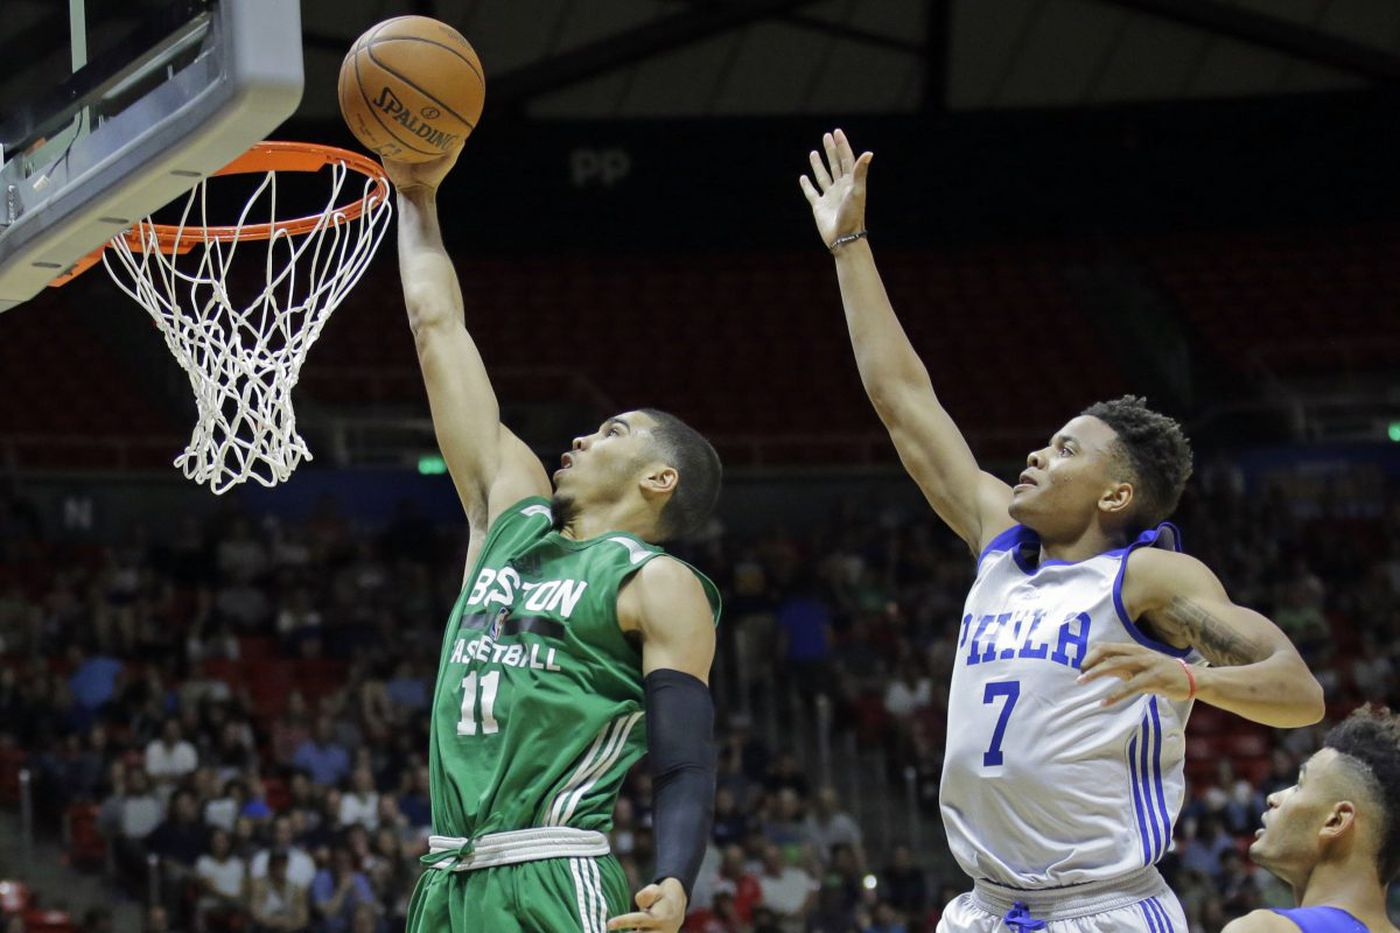 Markelle Fultz's defense, Brett Brown's handling of his rookie will be tested early